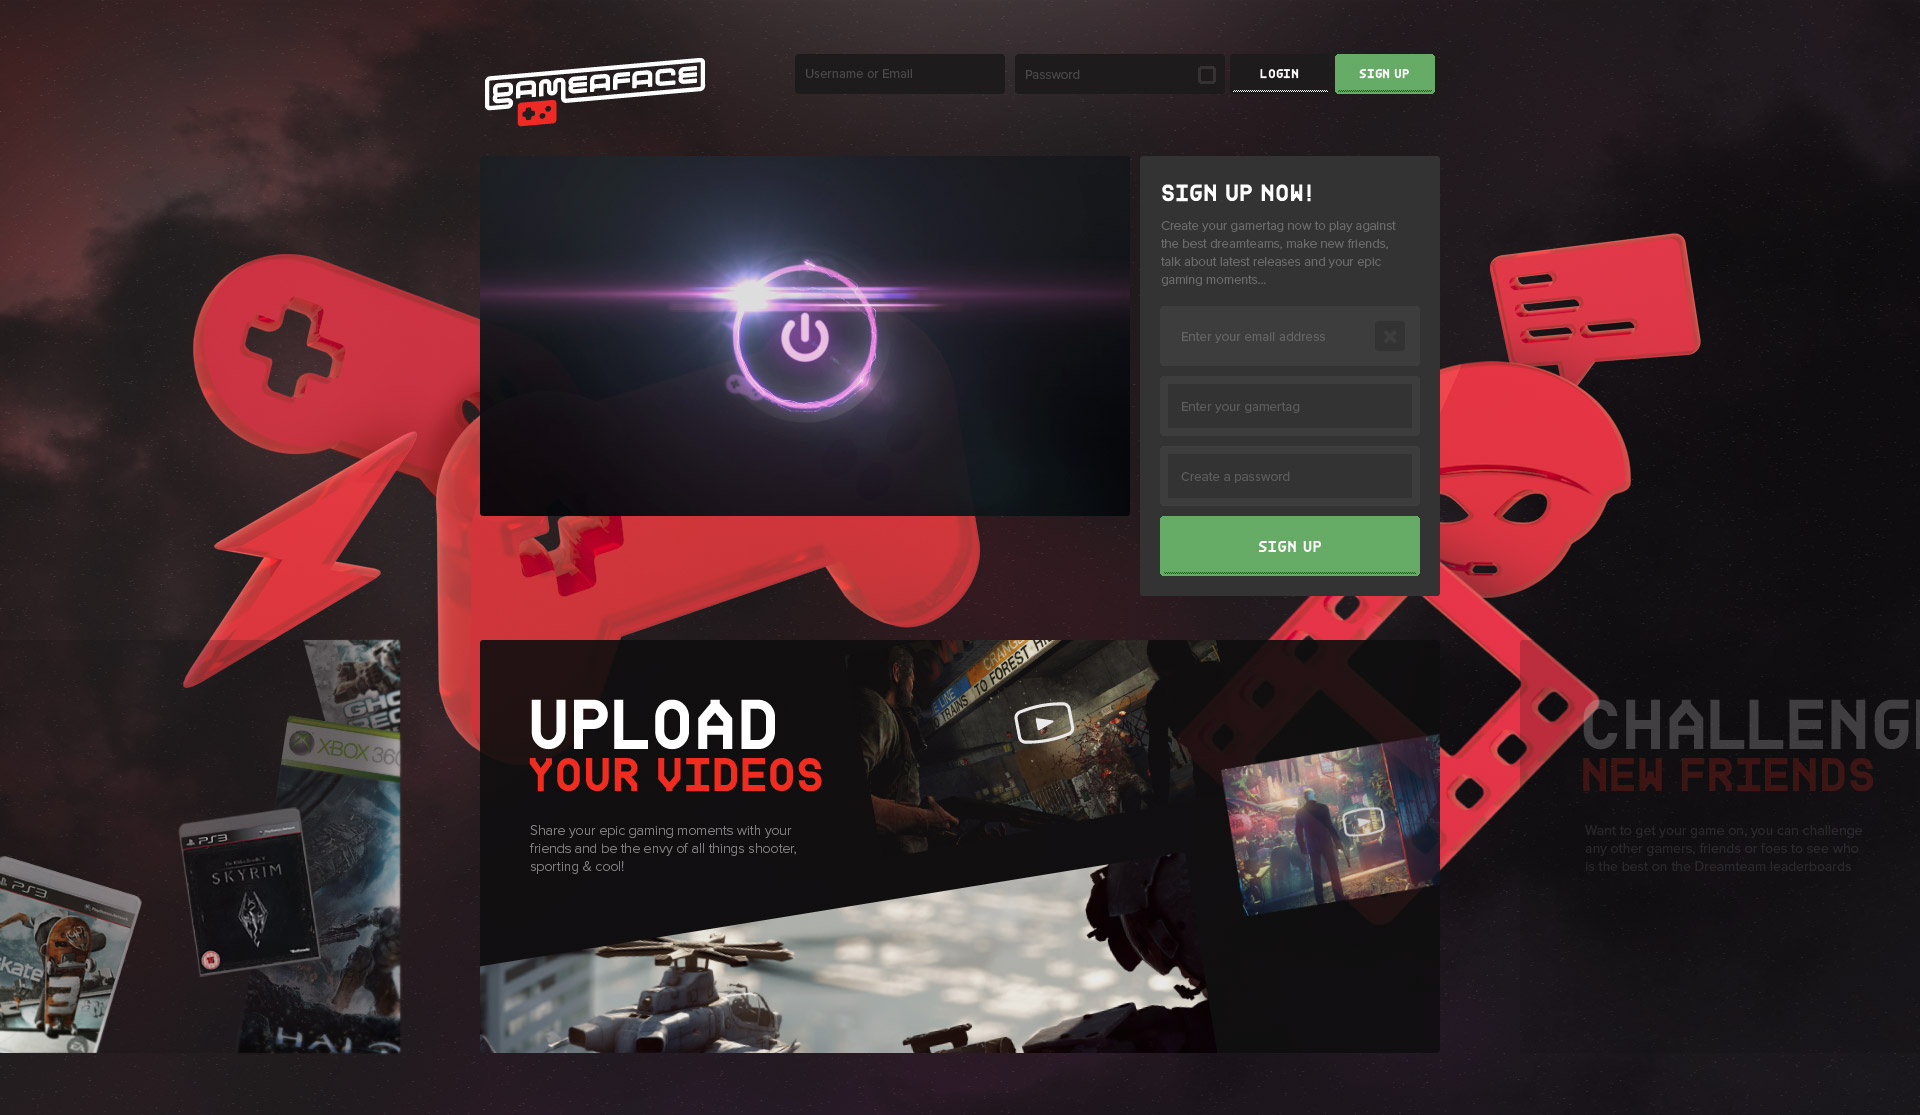 gameaface-homepage